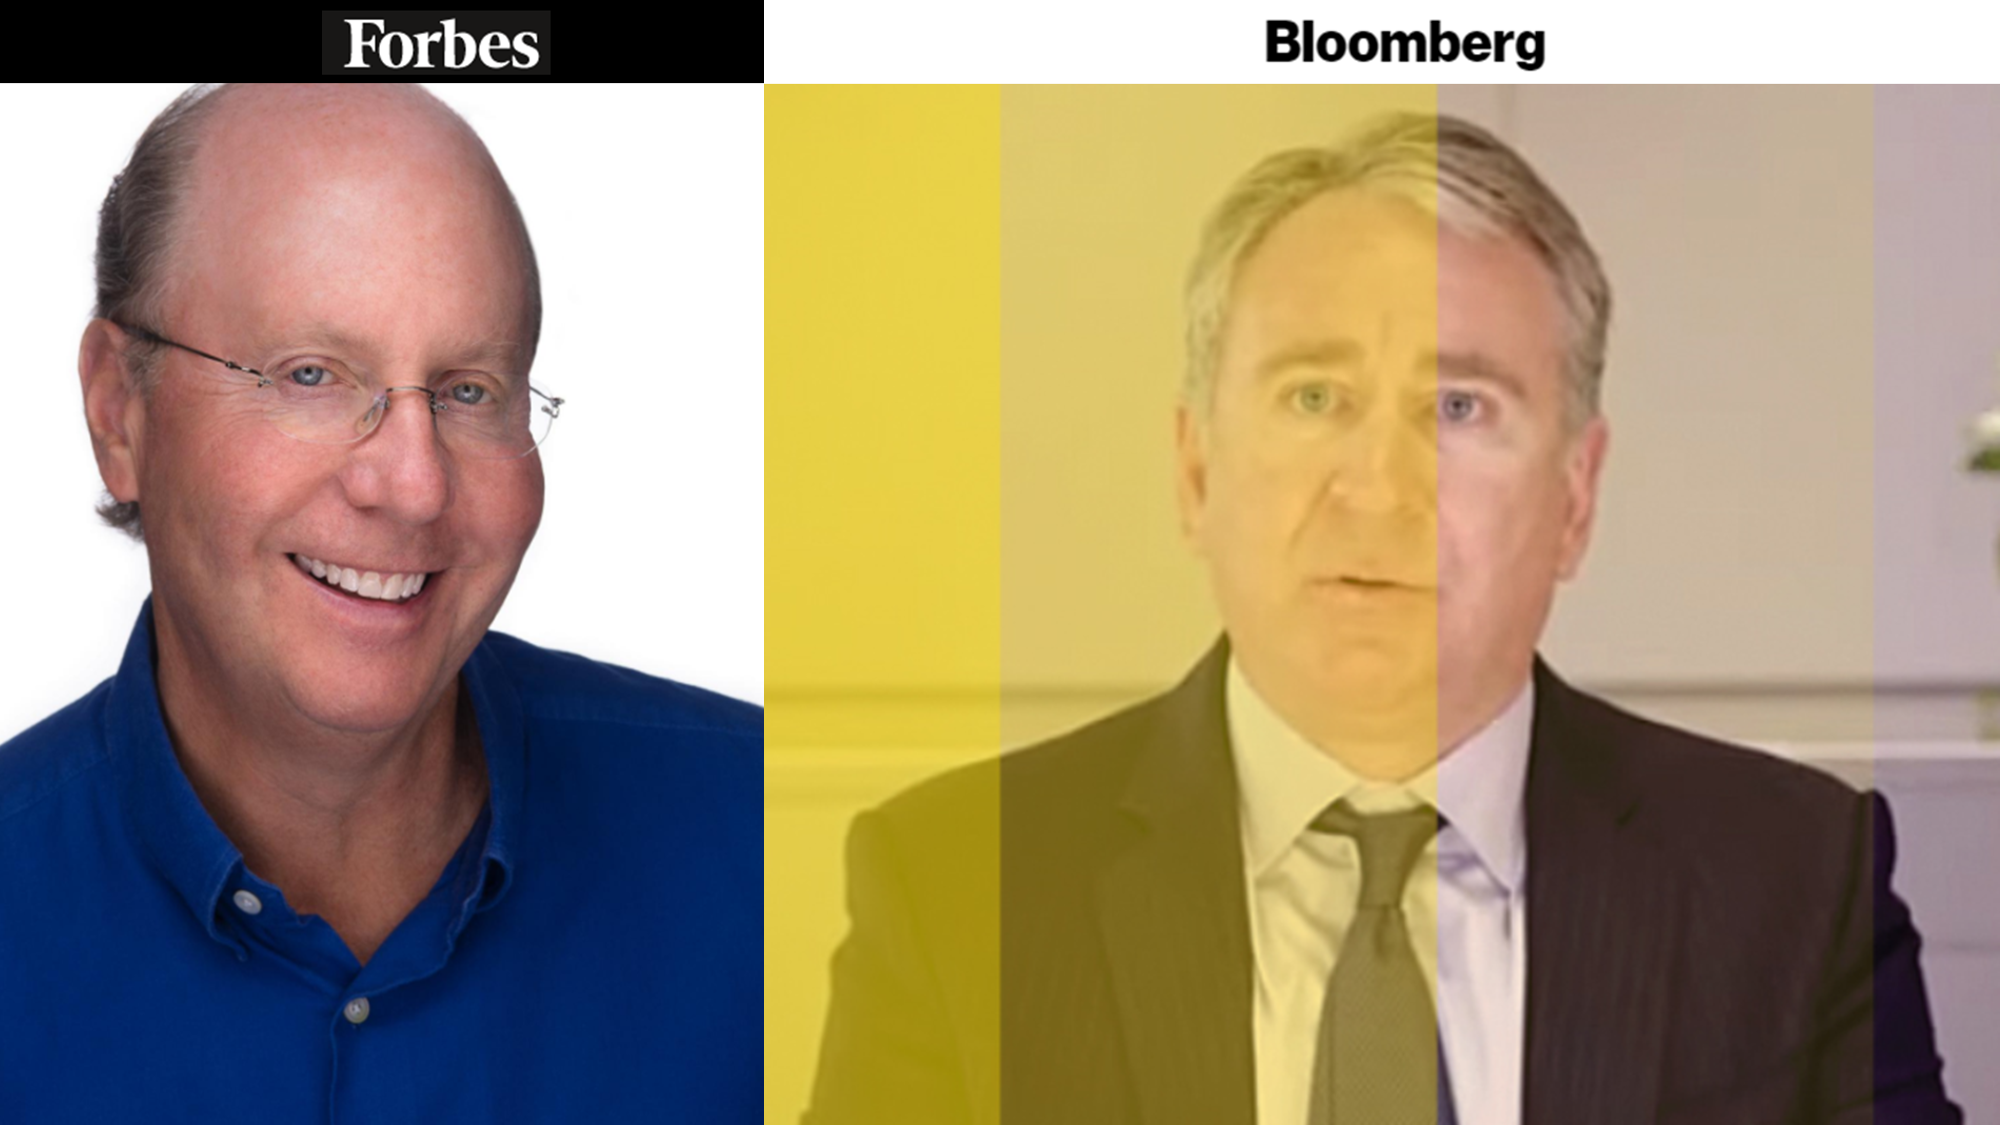 Bloomberg, Forbes: Alphacution Scores Press Twofer